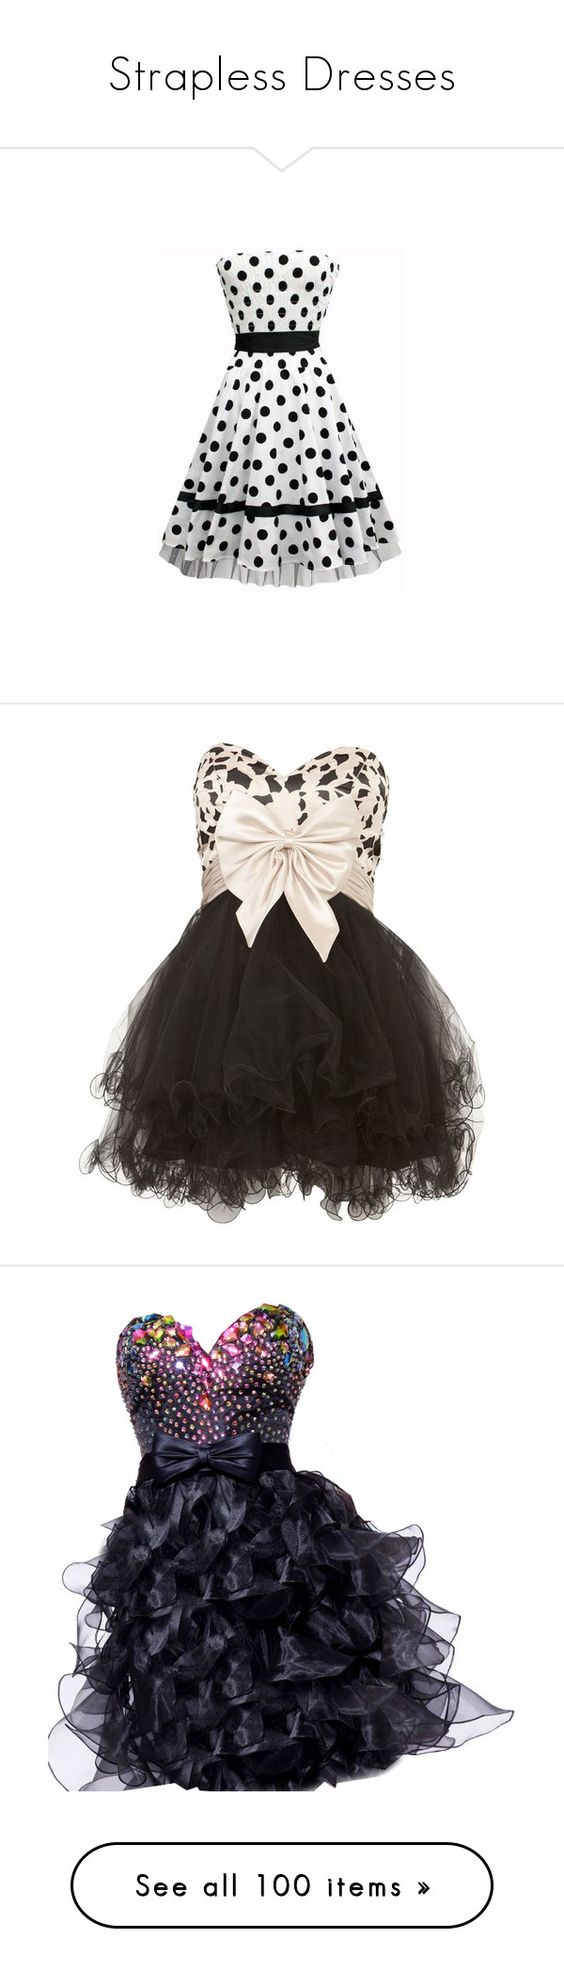 """Strapless Dresses"" by gbaby707 ❤ liked on Polyvore featuring dresses, rockabilly, rockabilly dress, vestidos, robe, short dresses, cocktail mini dress, black strapless dress, black cocktail dresses and prom dresses"